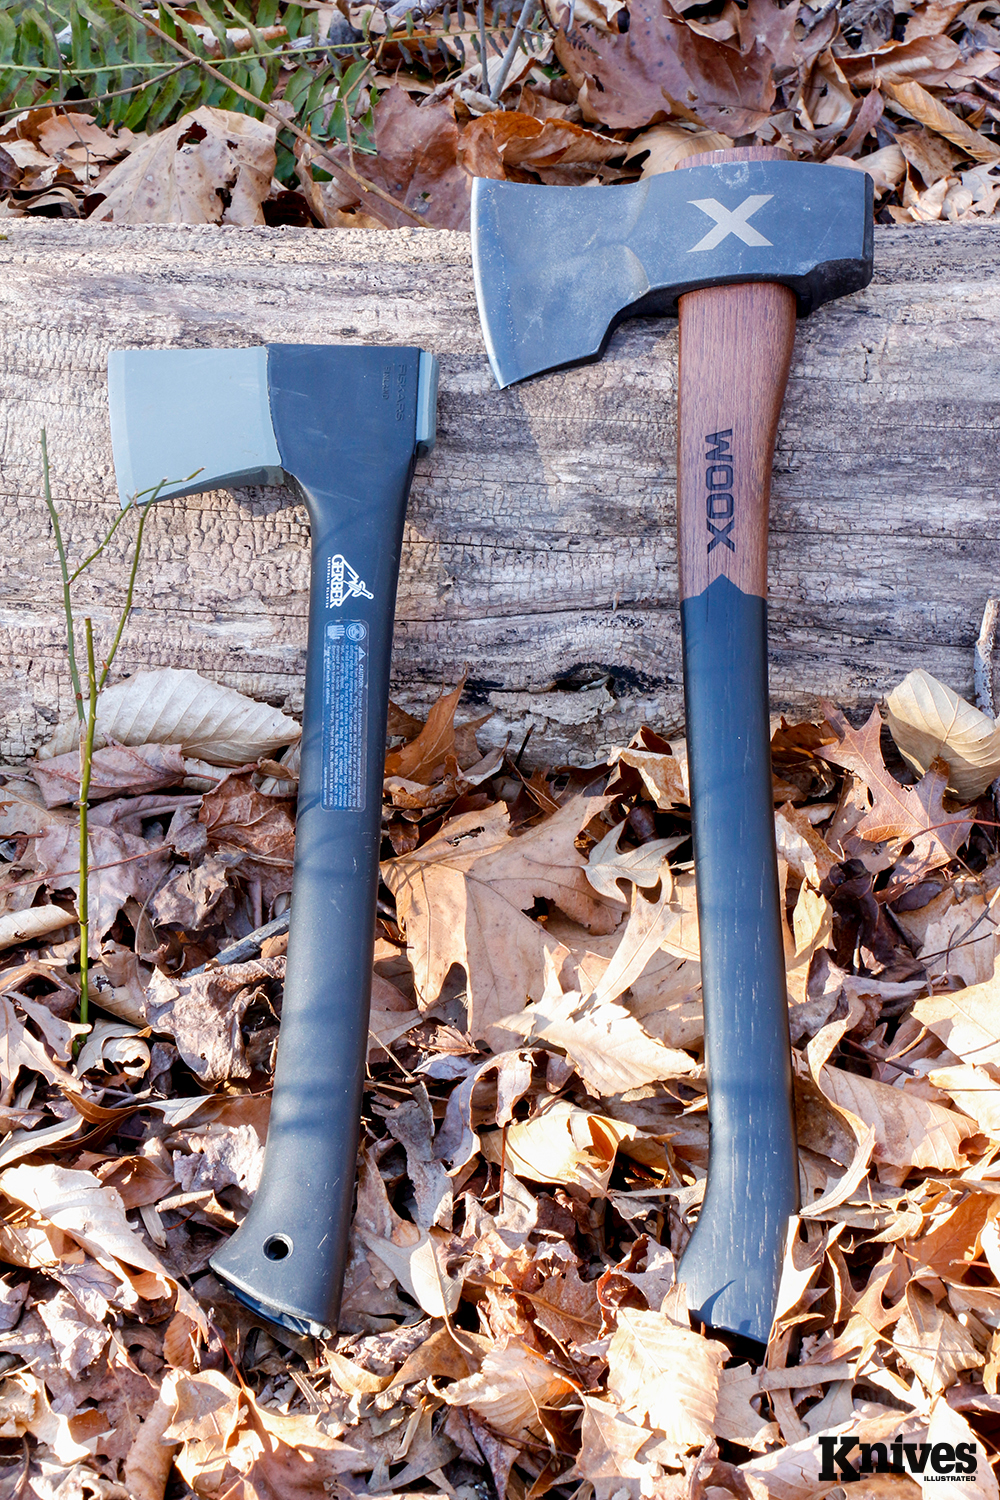 Here's a size comparison of the Woox Forte to the author's old Gerber Camp Axe.